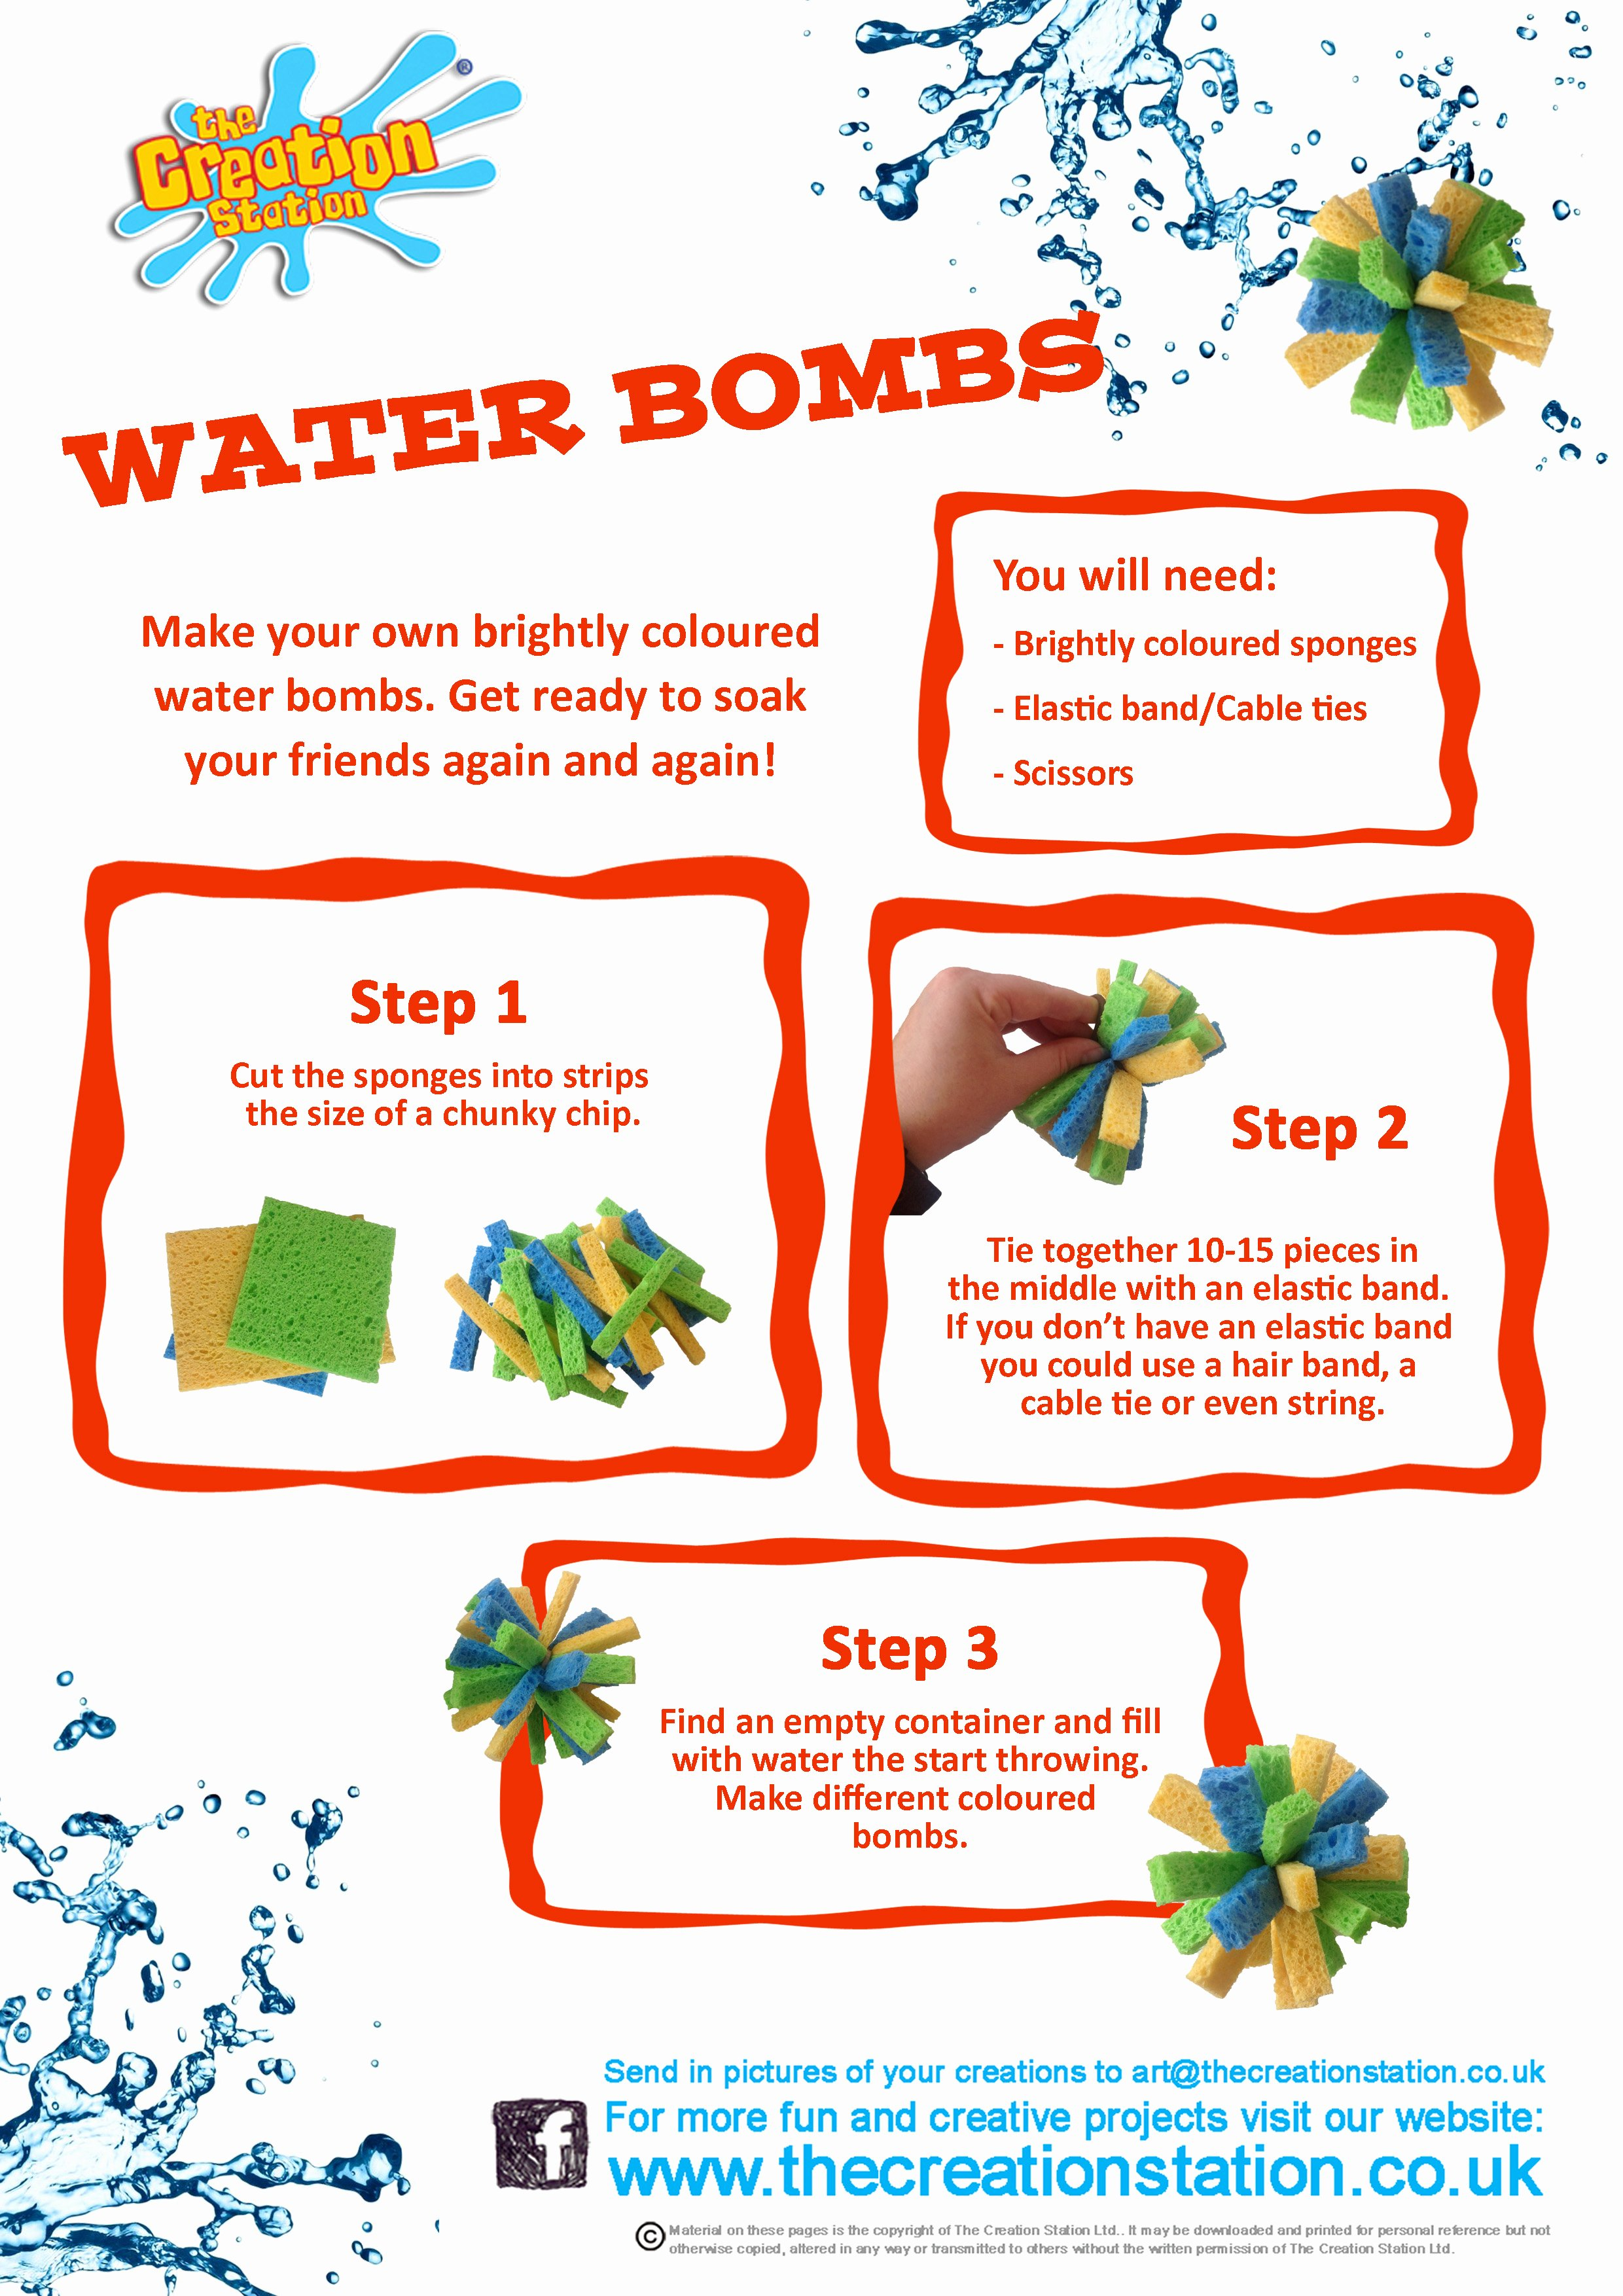 Make A Splash This Summer with Your Own Water Bombs